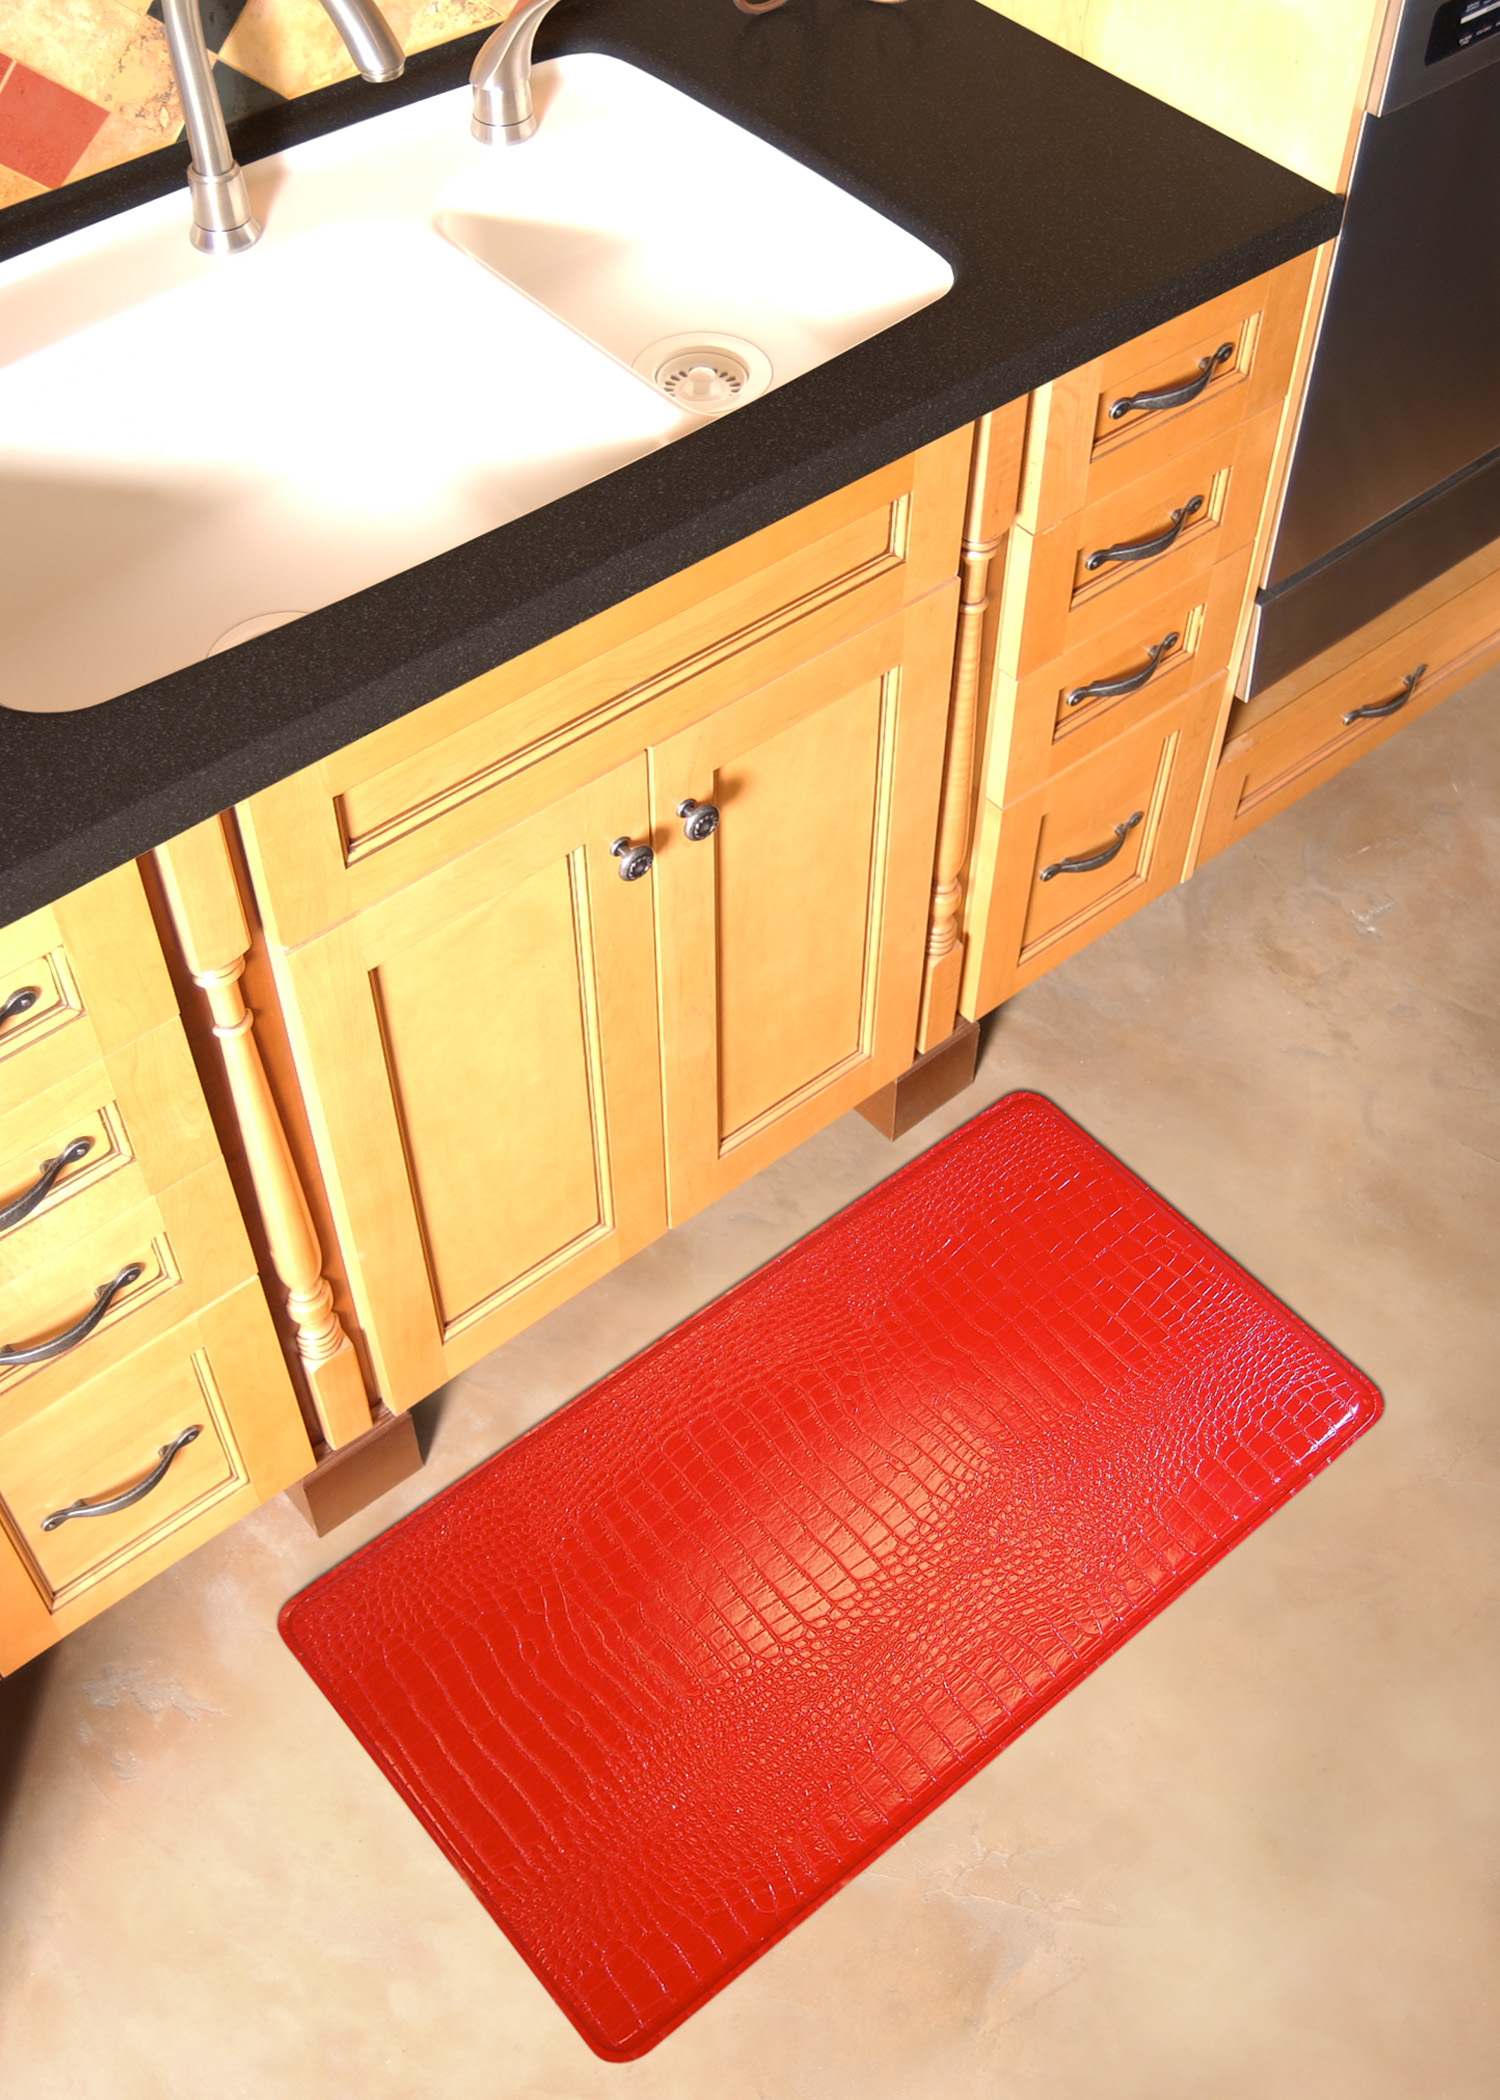 Gel Floor Mats For Kitchen Gelpro Gel Filled Anti Fatigue Floor Mats Hilary